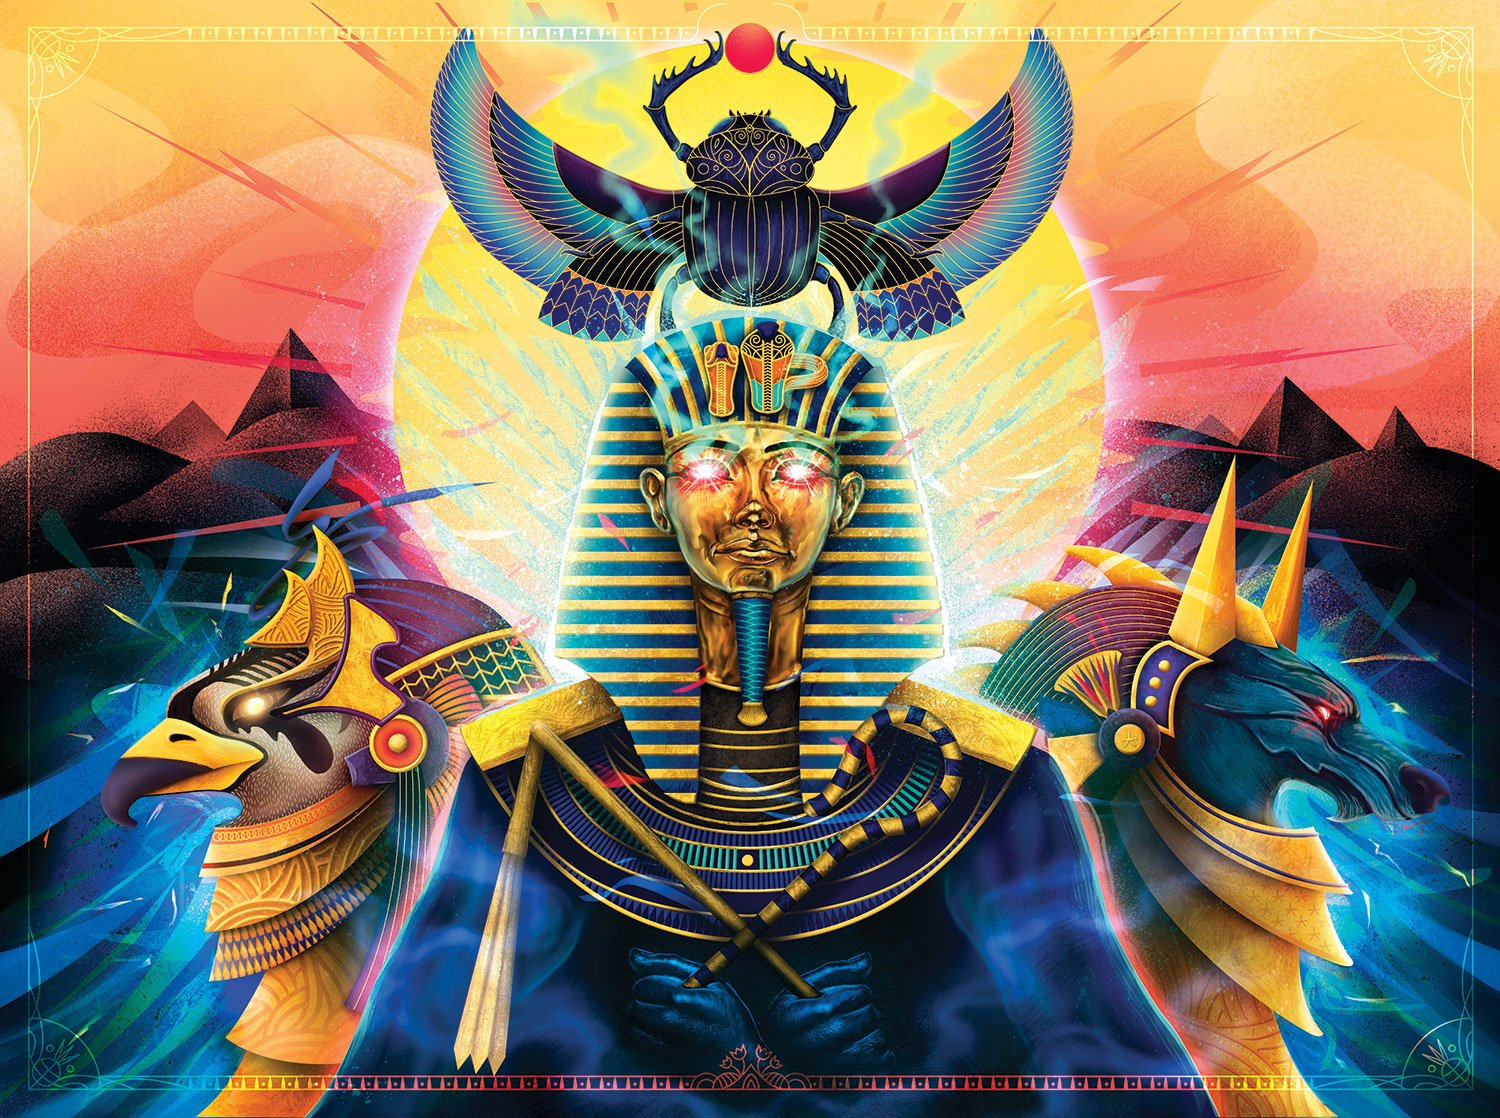 Bone Owl Puzzles Hail to the Pharaoh - 1000 Piece Adult Jigsaw Puzzle by Digital Painting & Art by Ladislas Chachignot | Cool & Colorful Egyptian Mythology & Fantasy